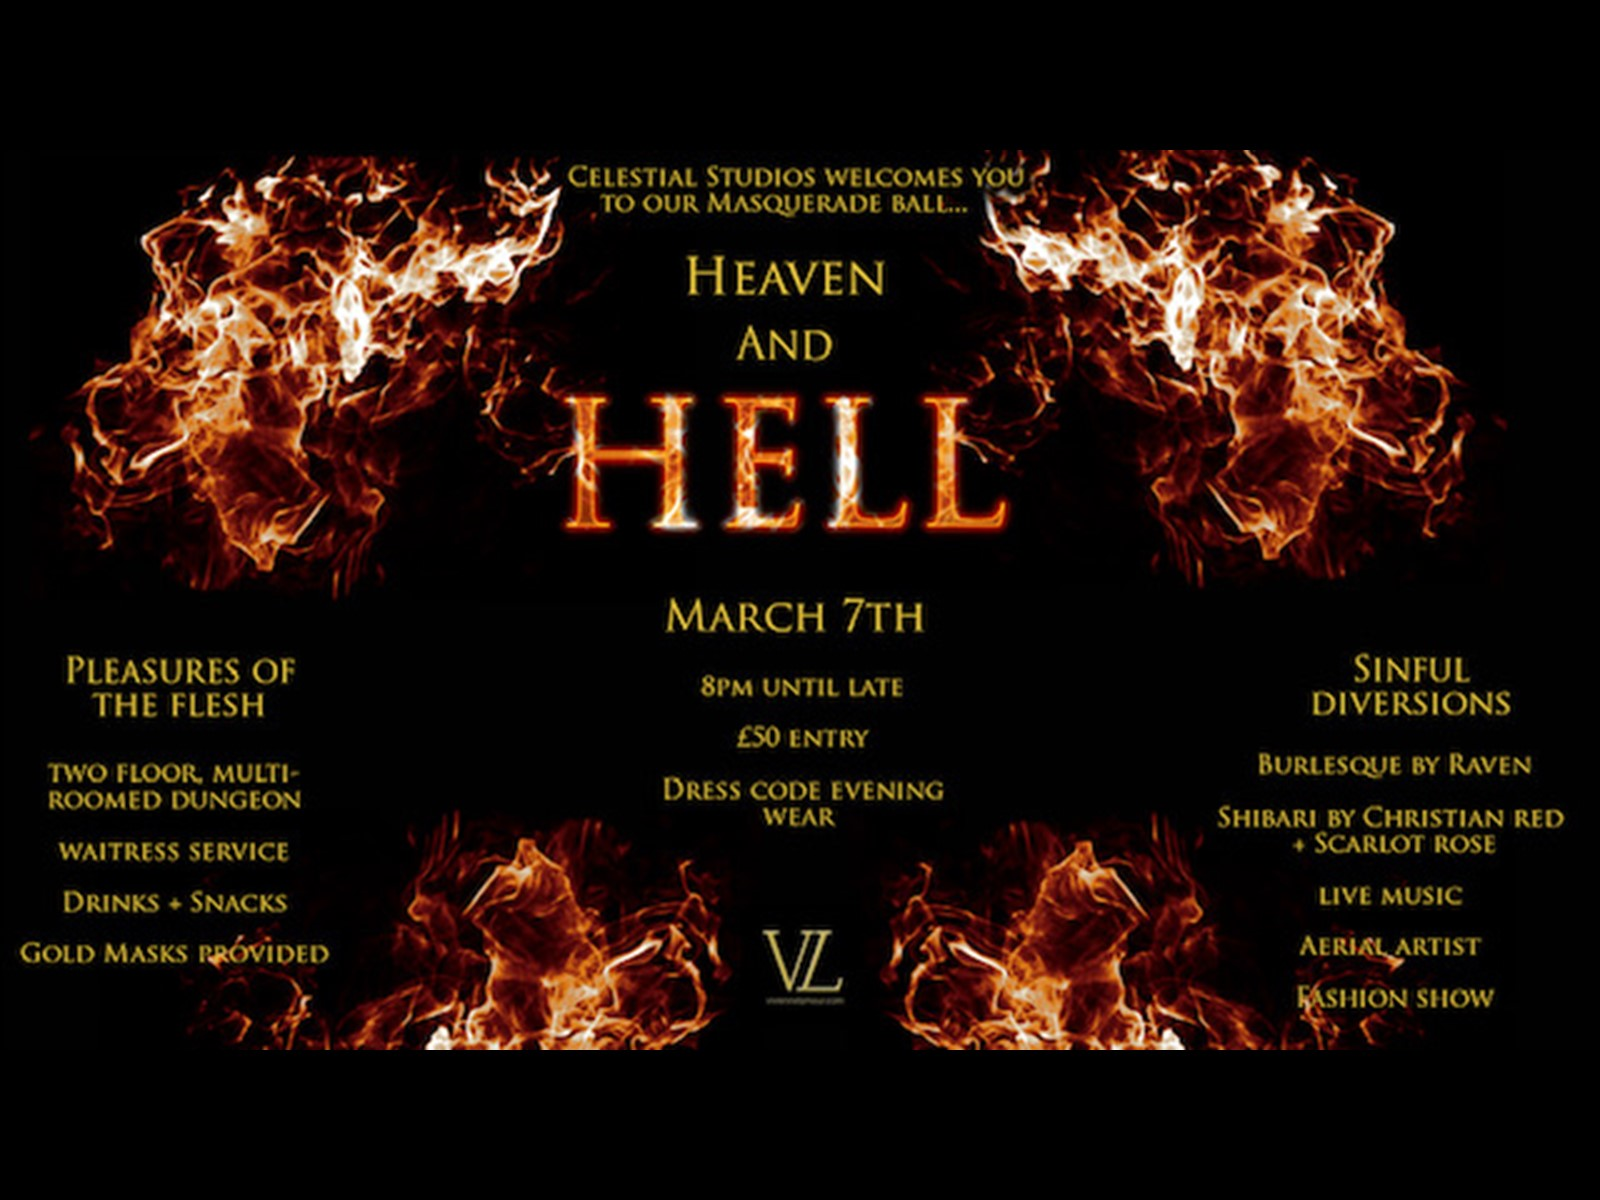 7th March - The Heaven & Hell Masquerade Ball - 8pm 'til late - £50 entry - An exclusive spectacular you will never forget!